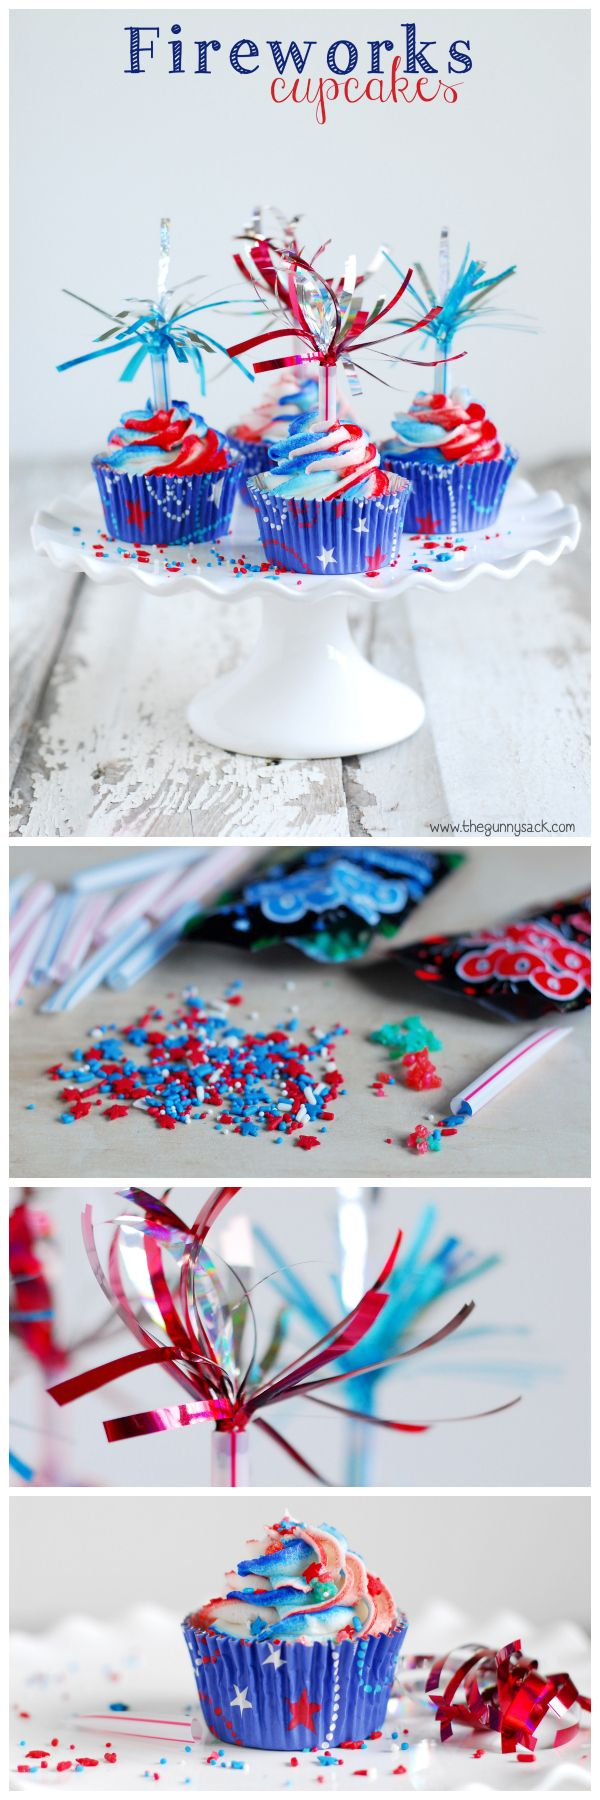 """Fireworks Cupcakes: A patriotic recipe for the 4th of July with fireworks cupcake toppers and popping """"fireworks"""" in your mouth!"""